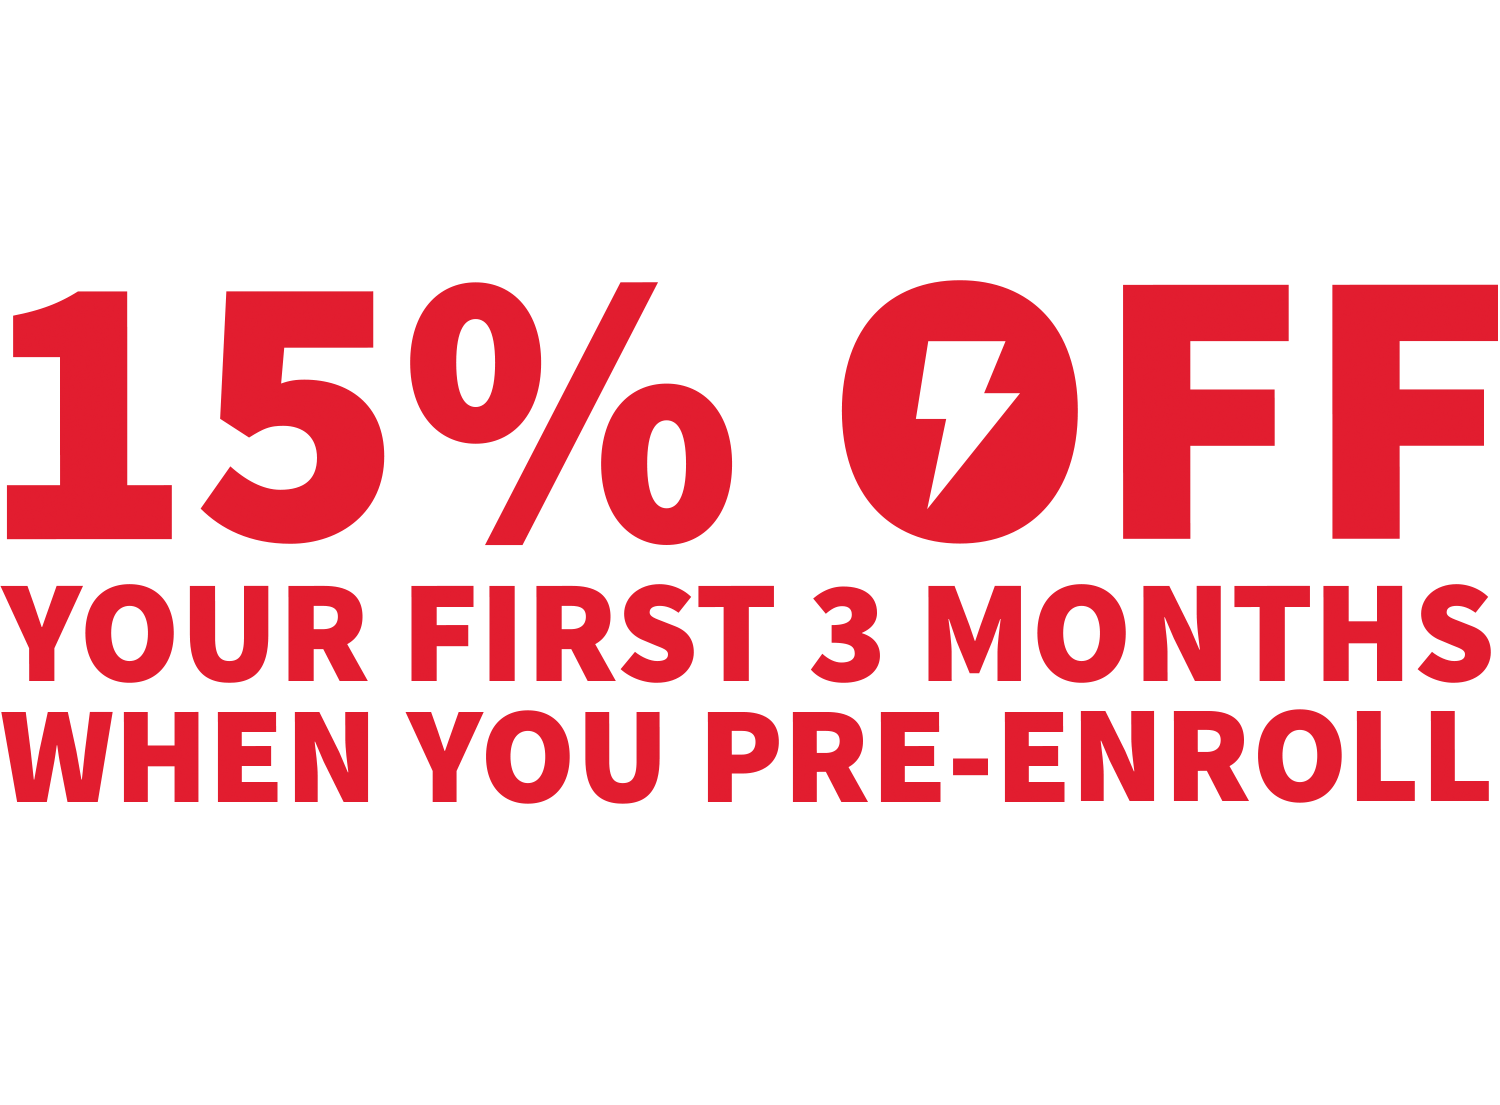 Image of 15% OFF YOUR FIRST 3 MONTHS